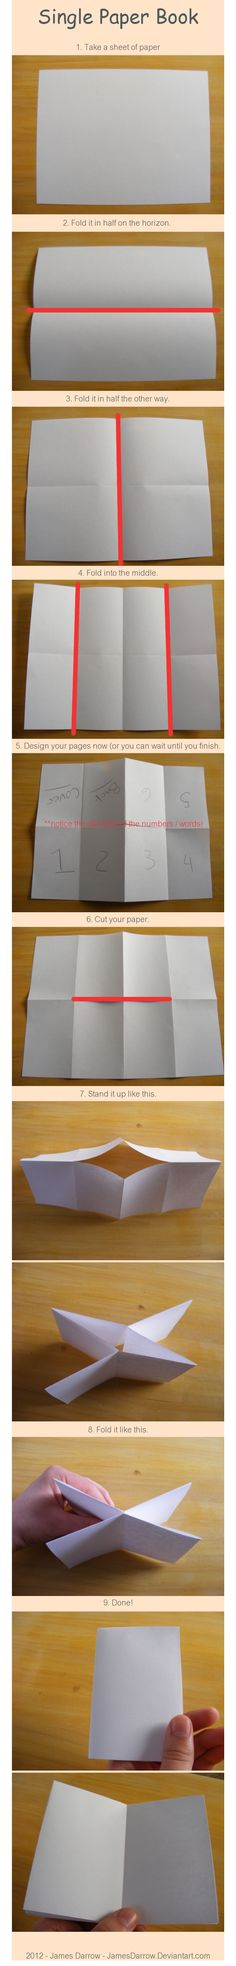 You just need single sheet of paper to make a mini-book. Use 11x17 paper to get a bigger book, 8.5x11 for a mini-book.